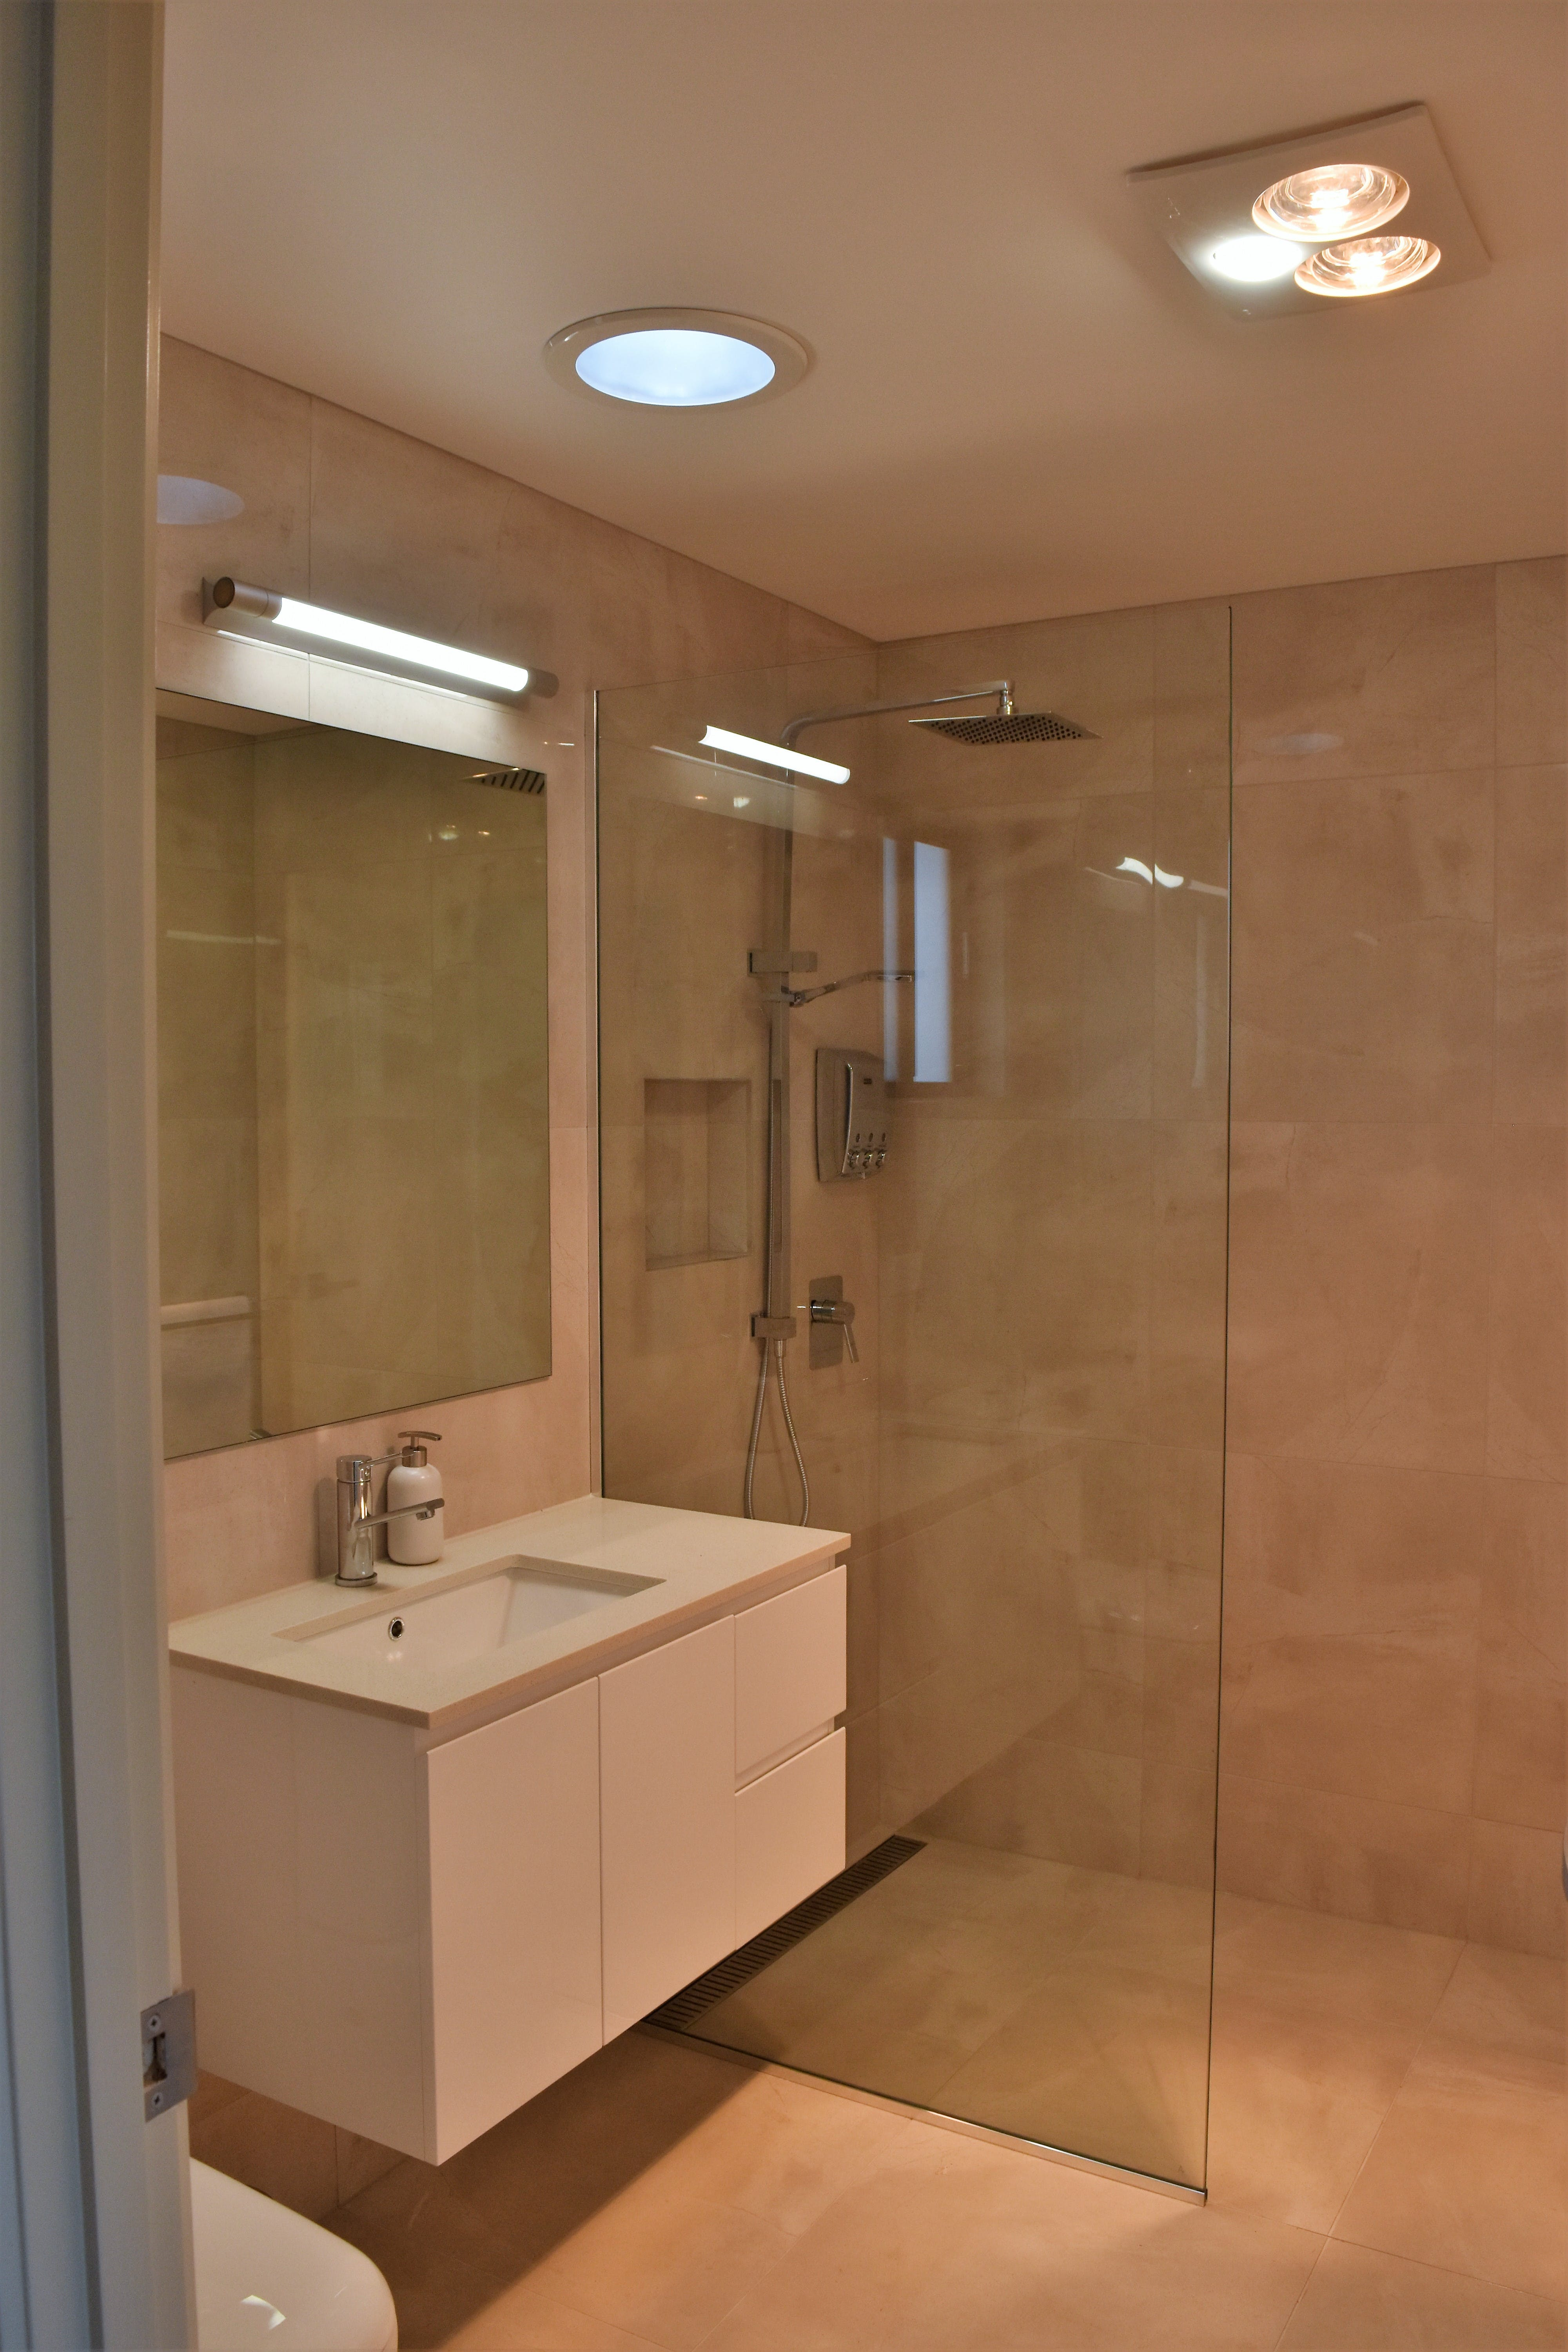 Each room has a private ensuite with large shower. Hairdryer, shampoo, conditioner and body wash provided.